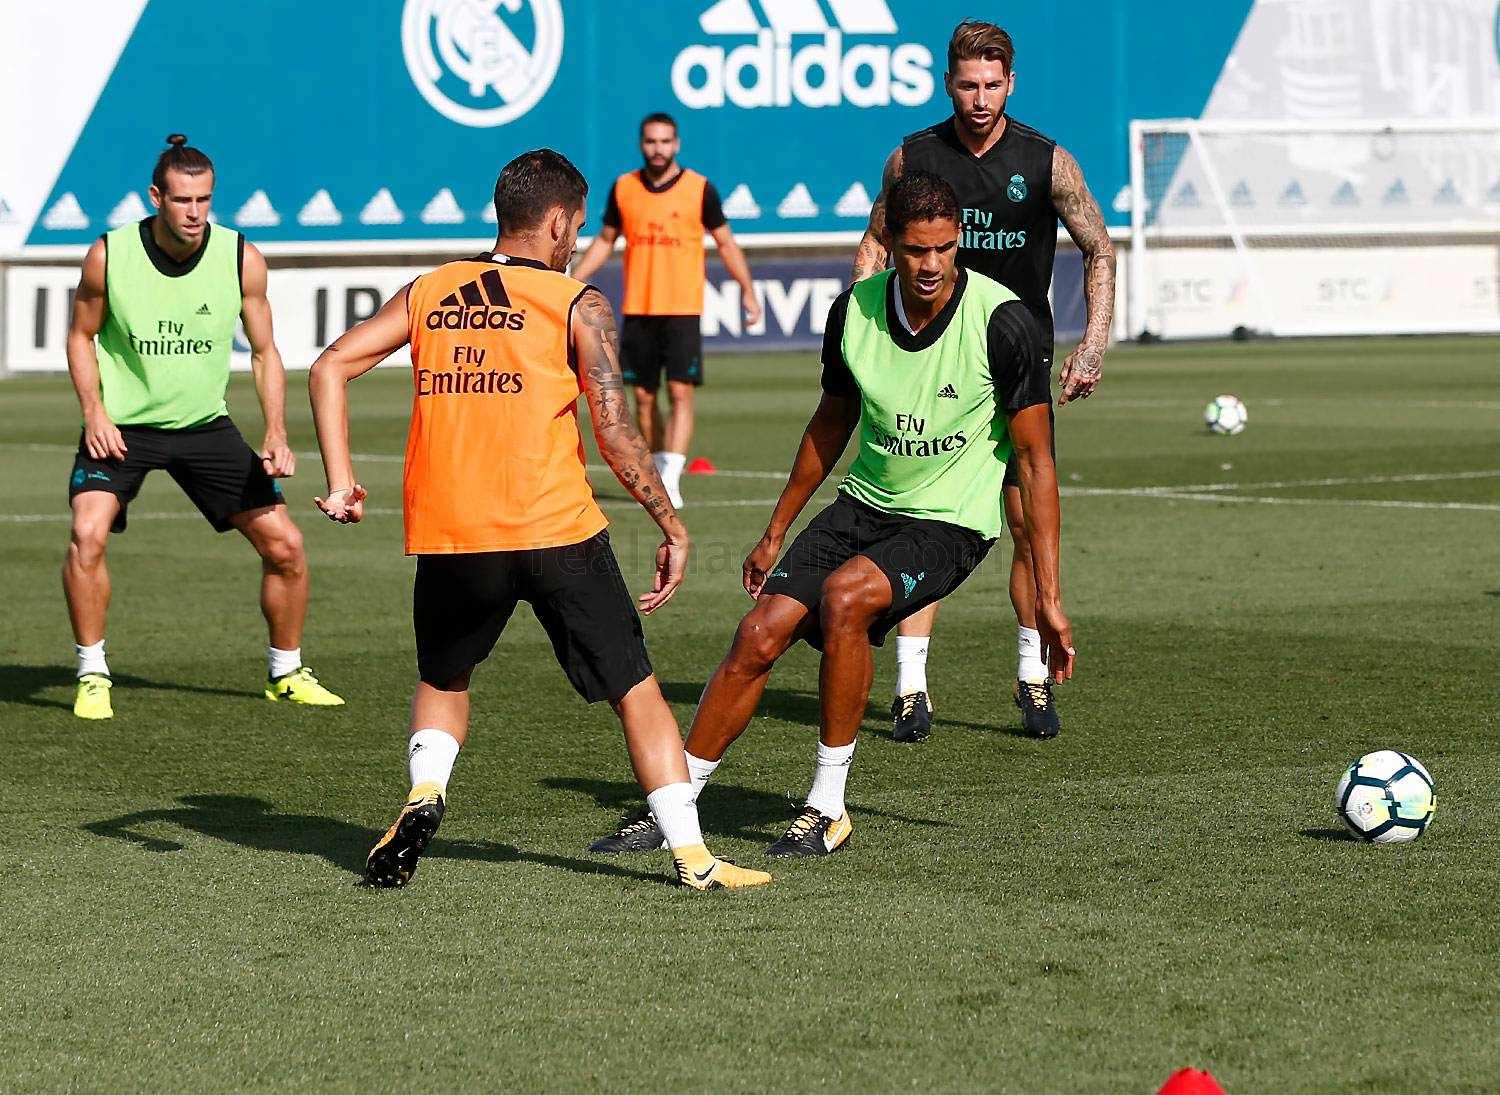 Real Madrid - Entrenamiento del Real Madrid - 25-08-2017